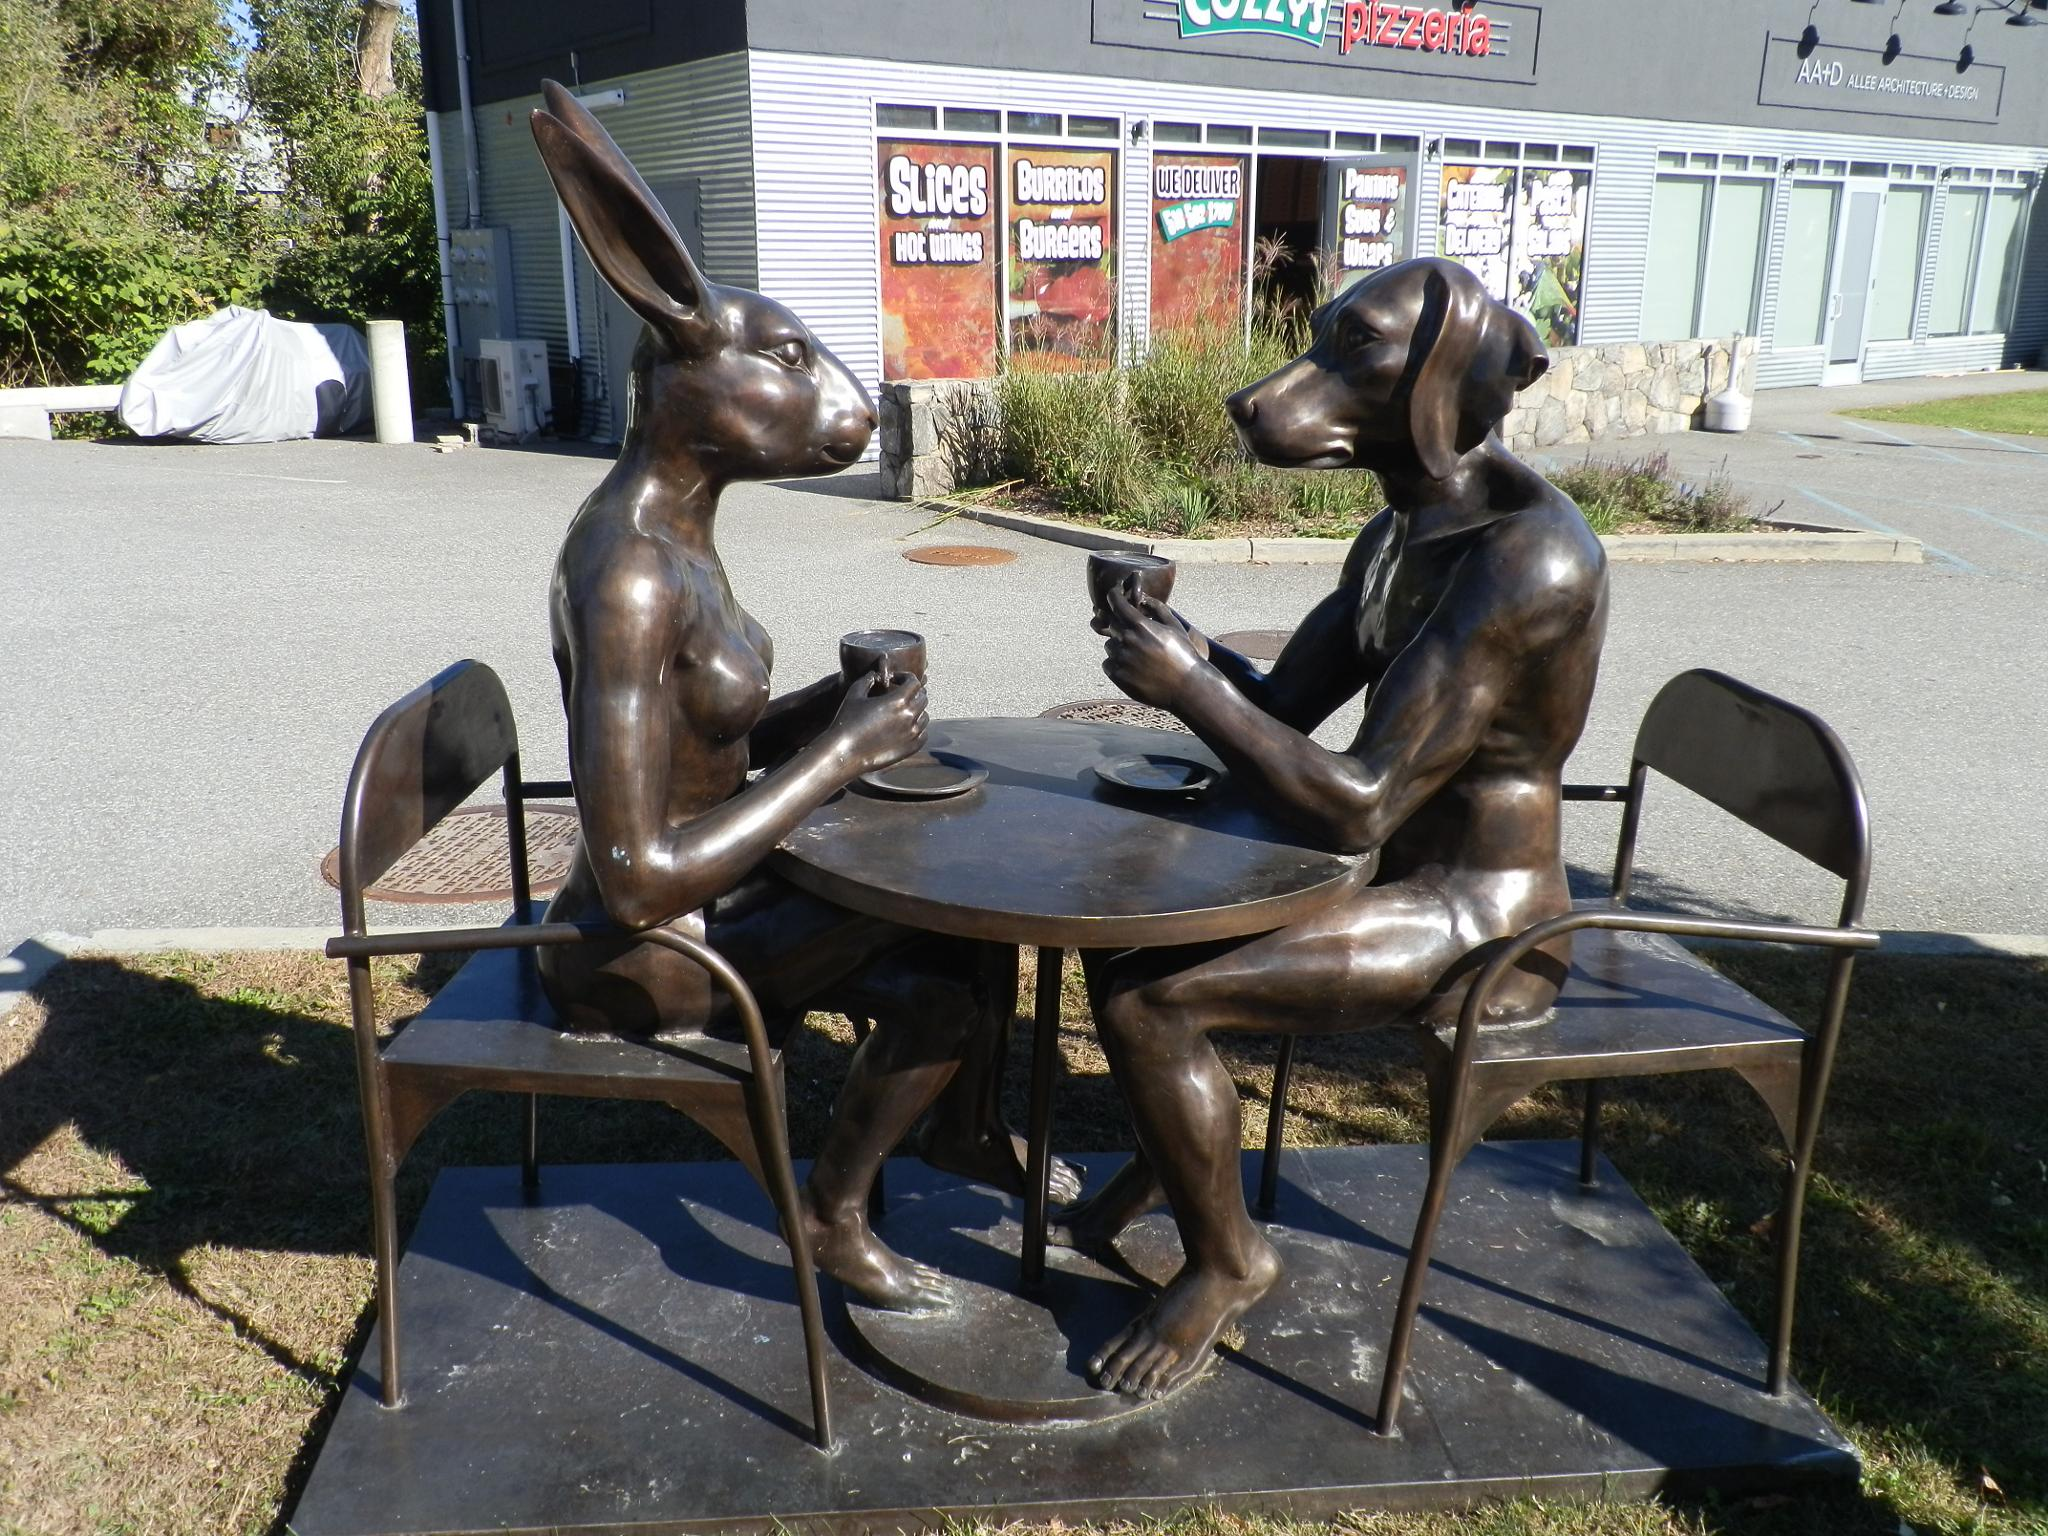 Coffee with a friend by BobJohnston